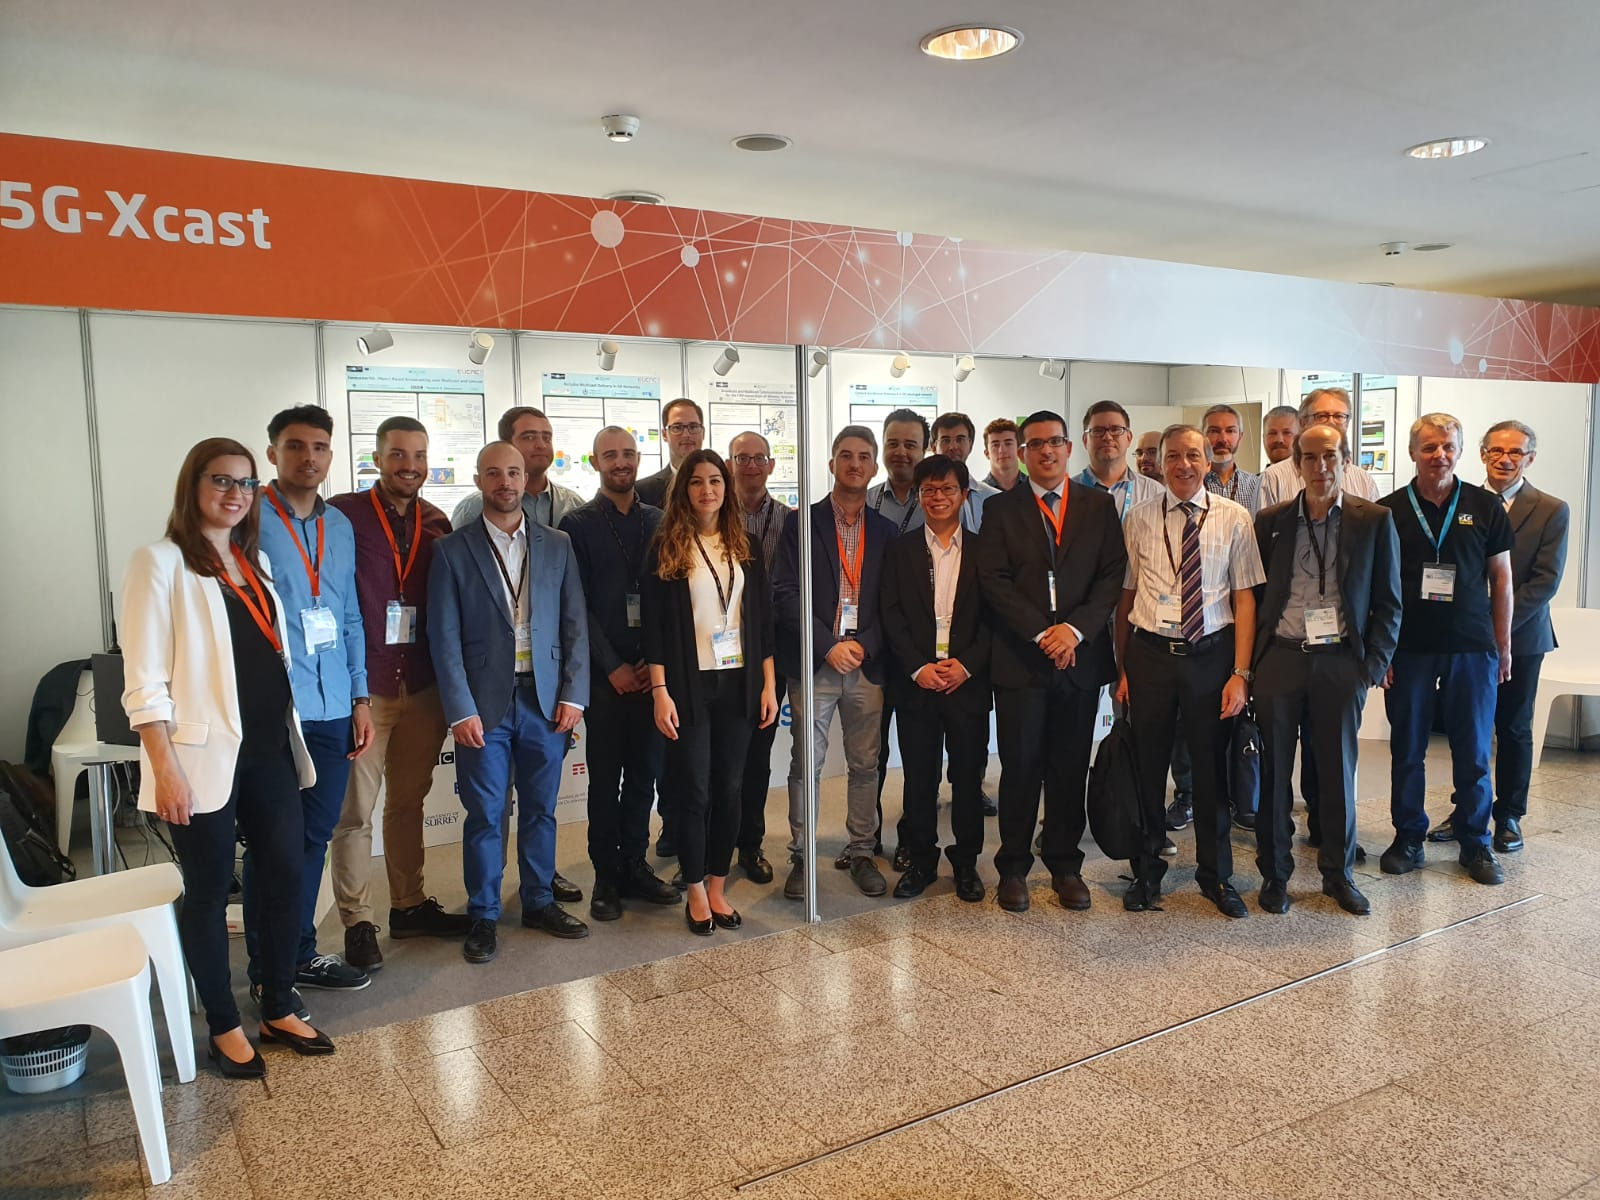 5G-Xcast participation at EUCNC 2019